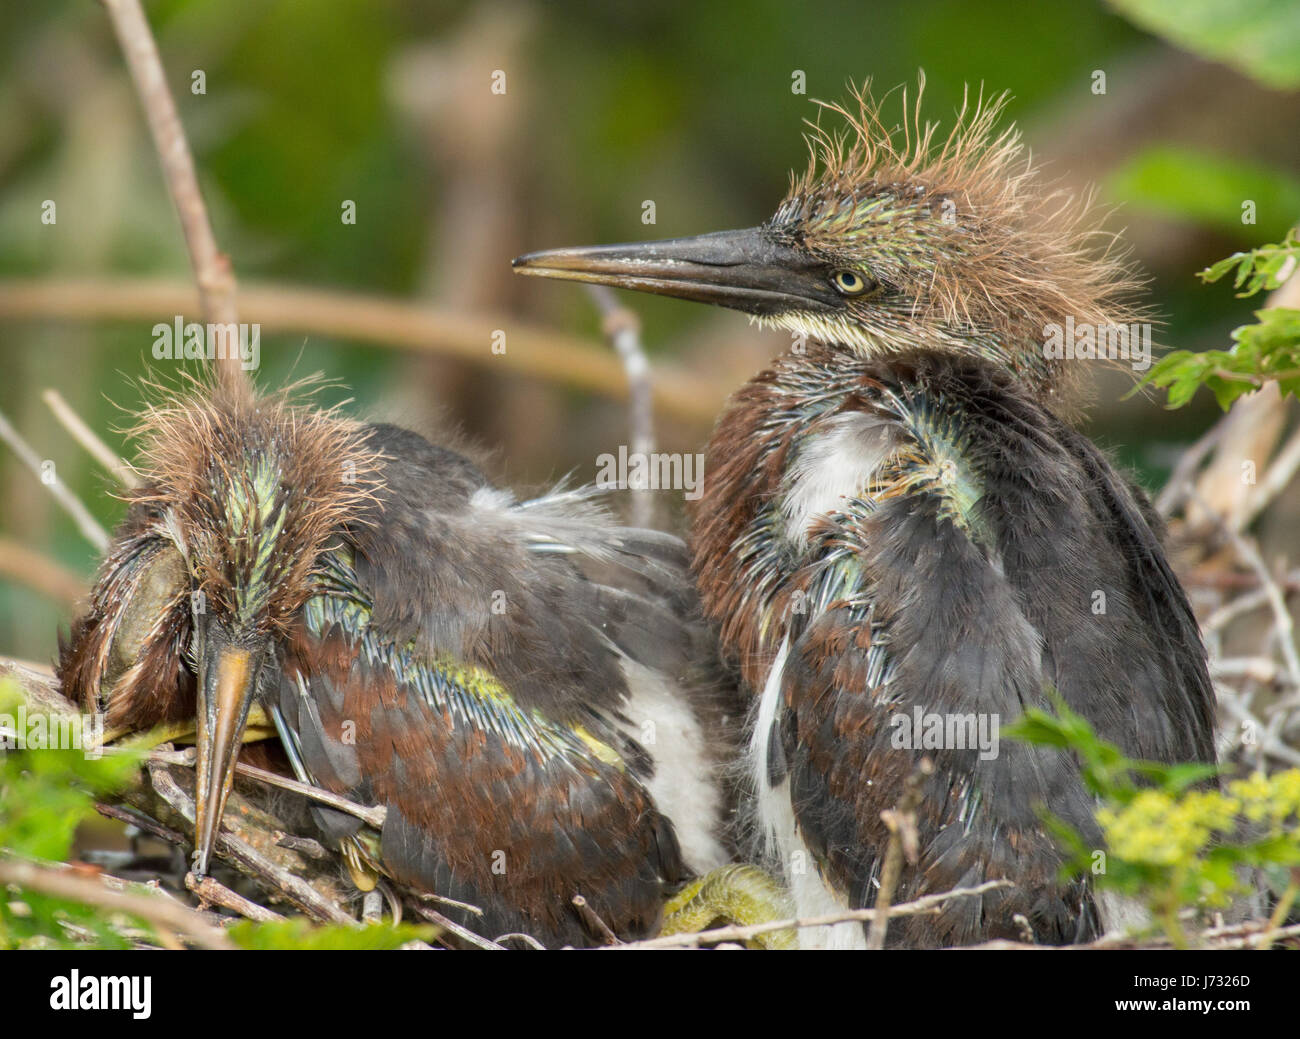 Tricolored Heron Fledglings - Stock Image